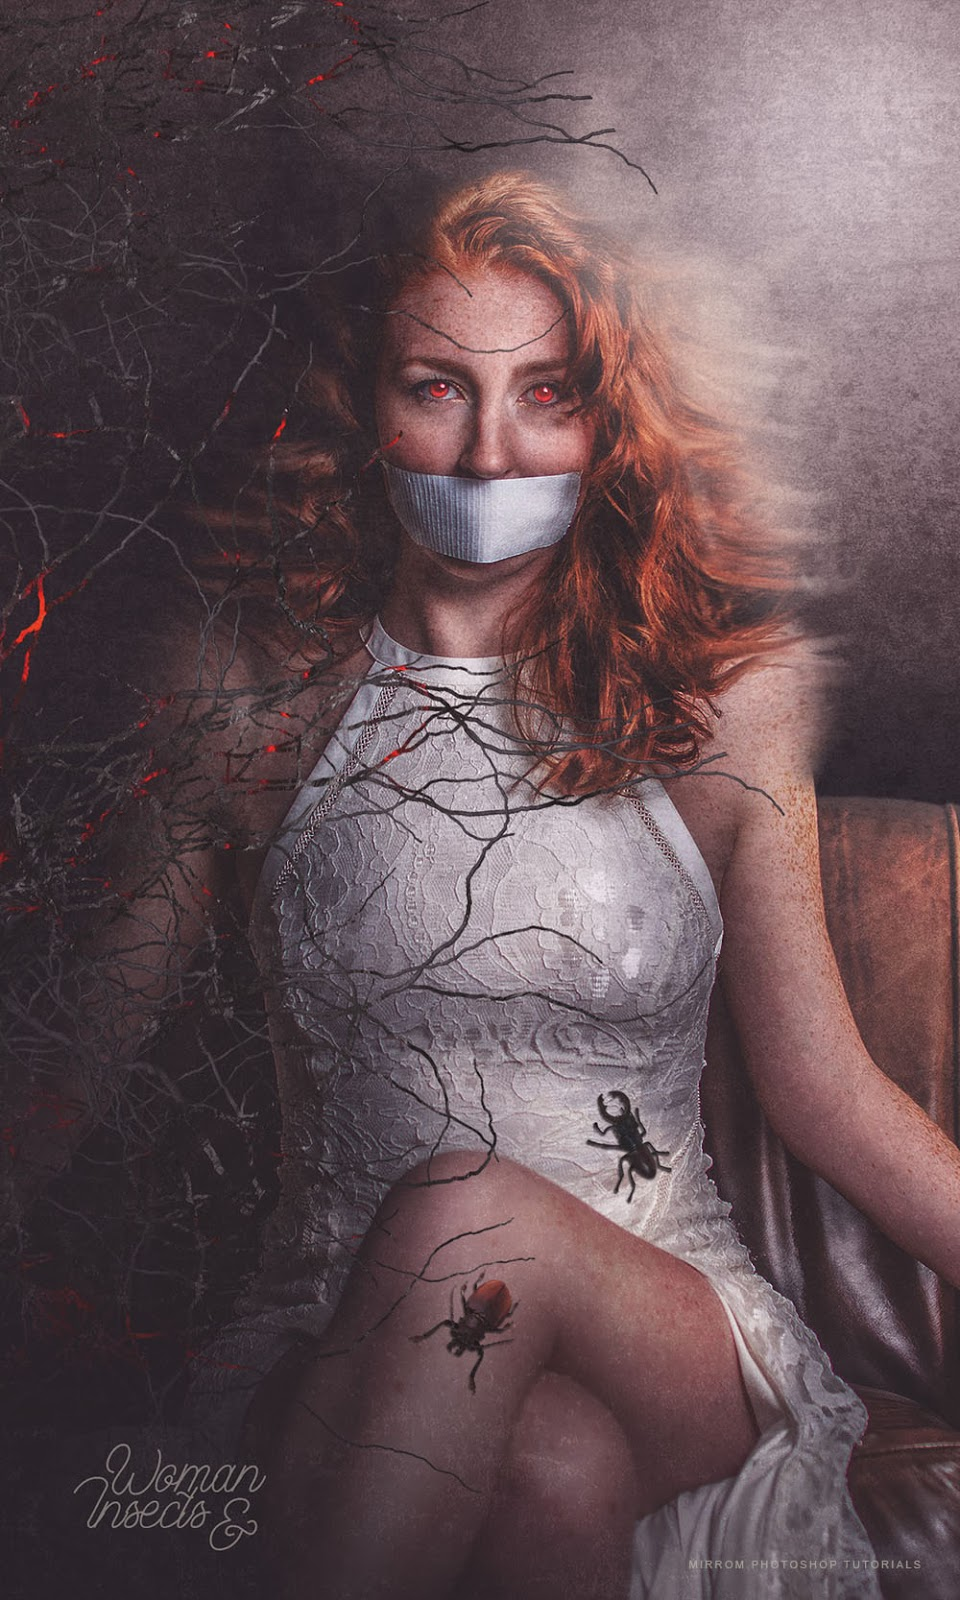 Create a Woman and Insects Digital Art Photo Manipulation in Photoshop CC